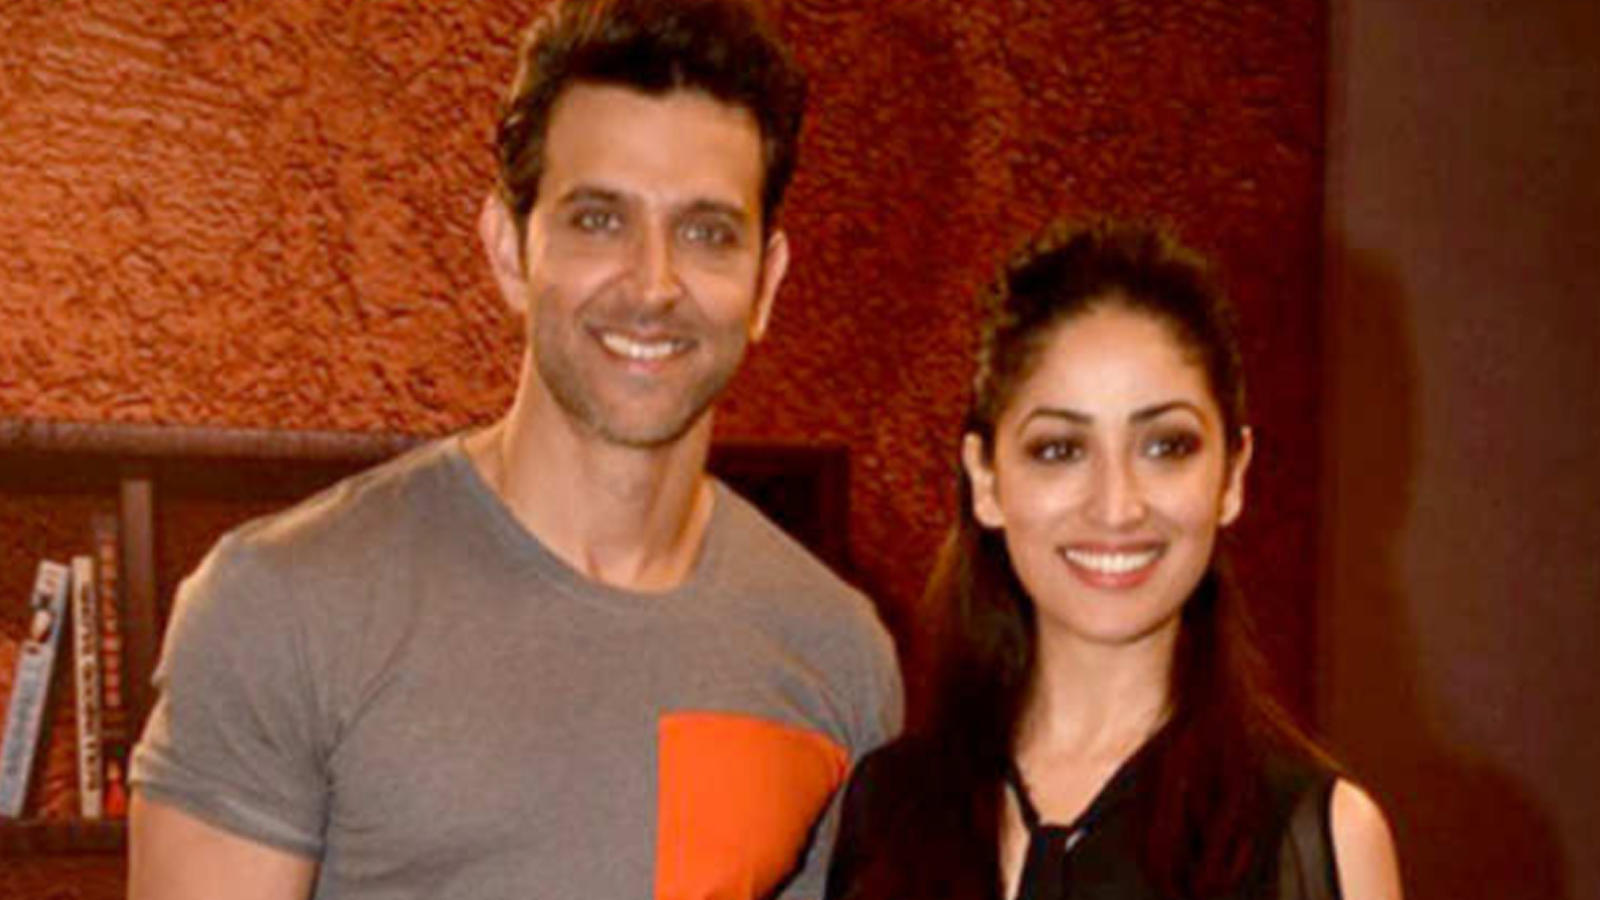 Yami Gautam and Hrithik Roshan promote 'Kaabil' in China